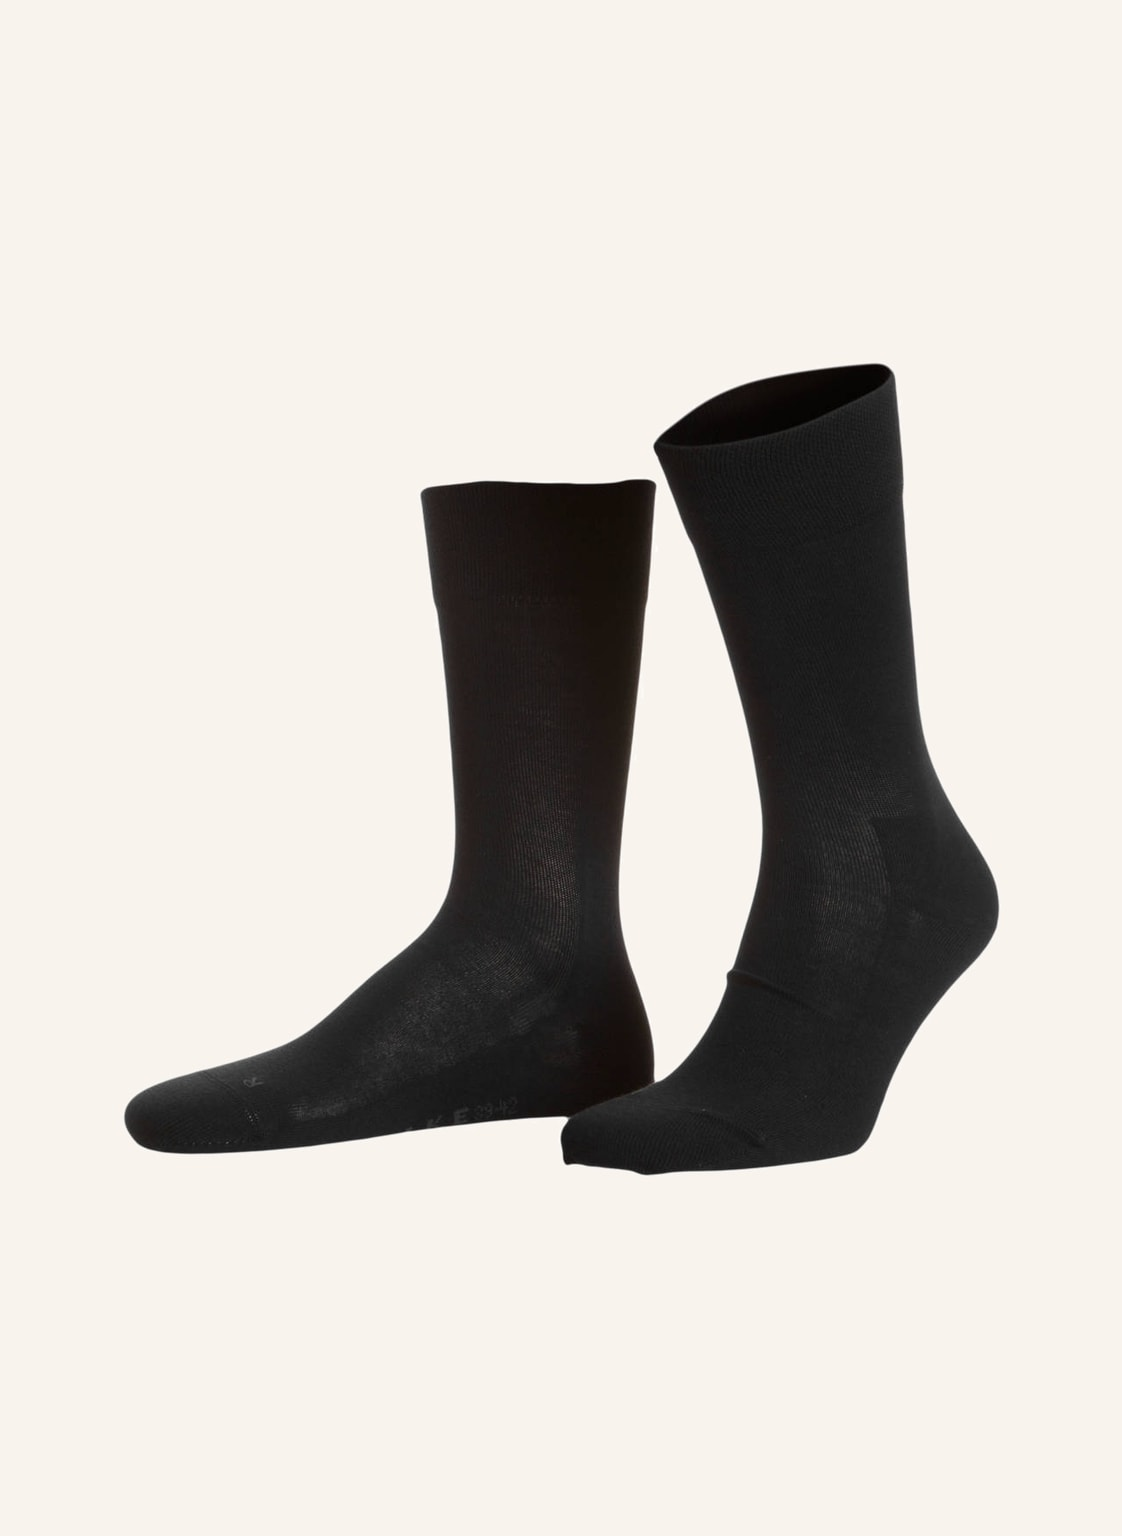 Falke Socken London Sensitive schwarz von Falke